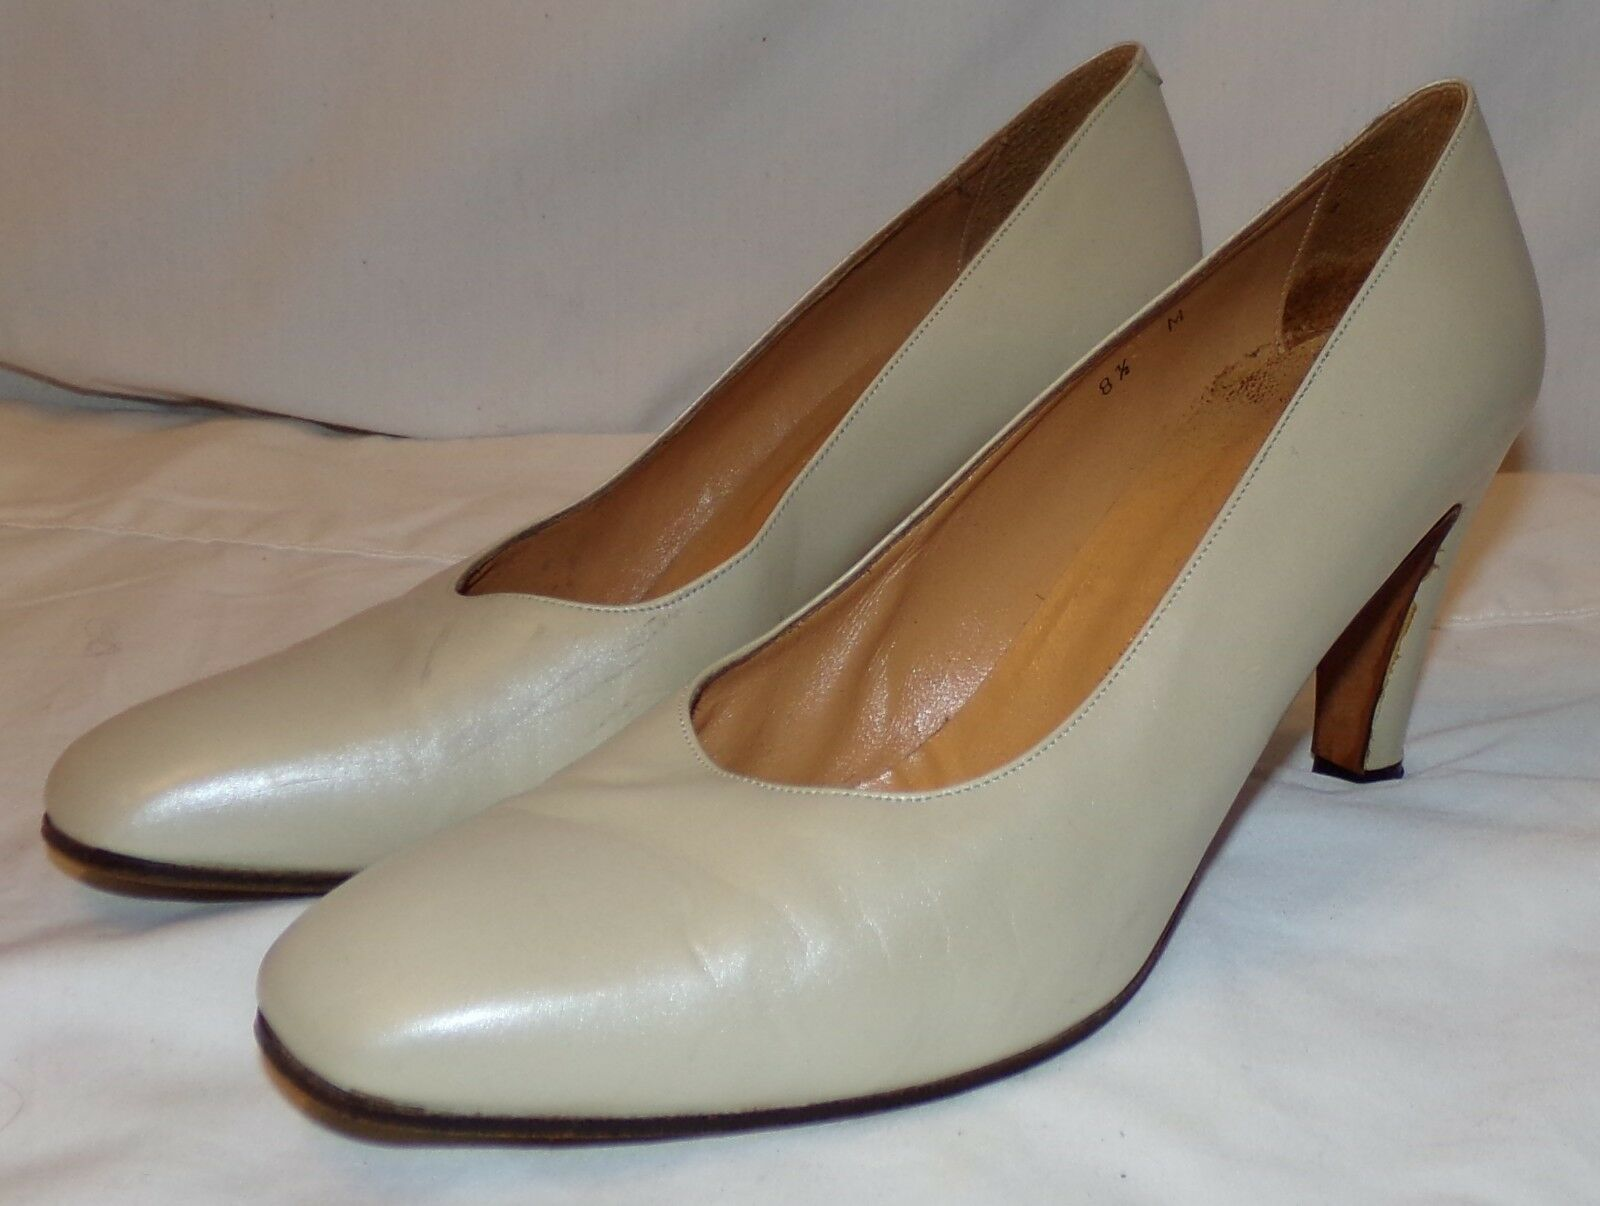 Andrew Geller Ivory Shoes Pearl Heels Pumps Womens Shoes Ivory 8.5 8 1/2 M b780c9